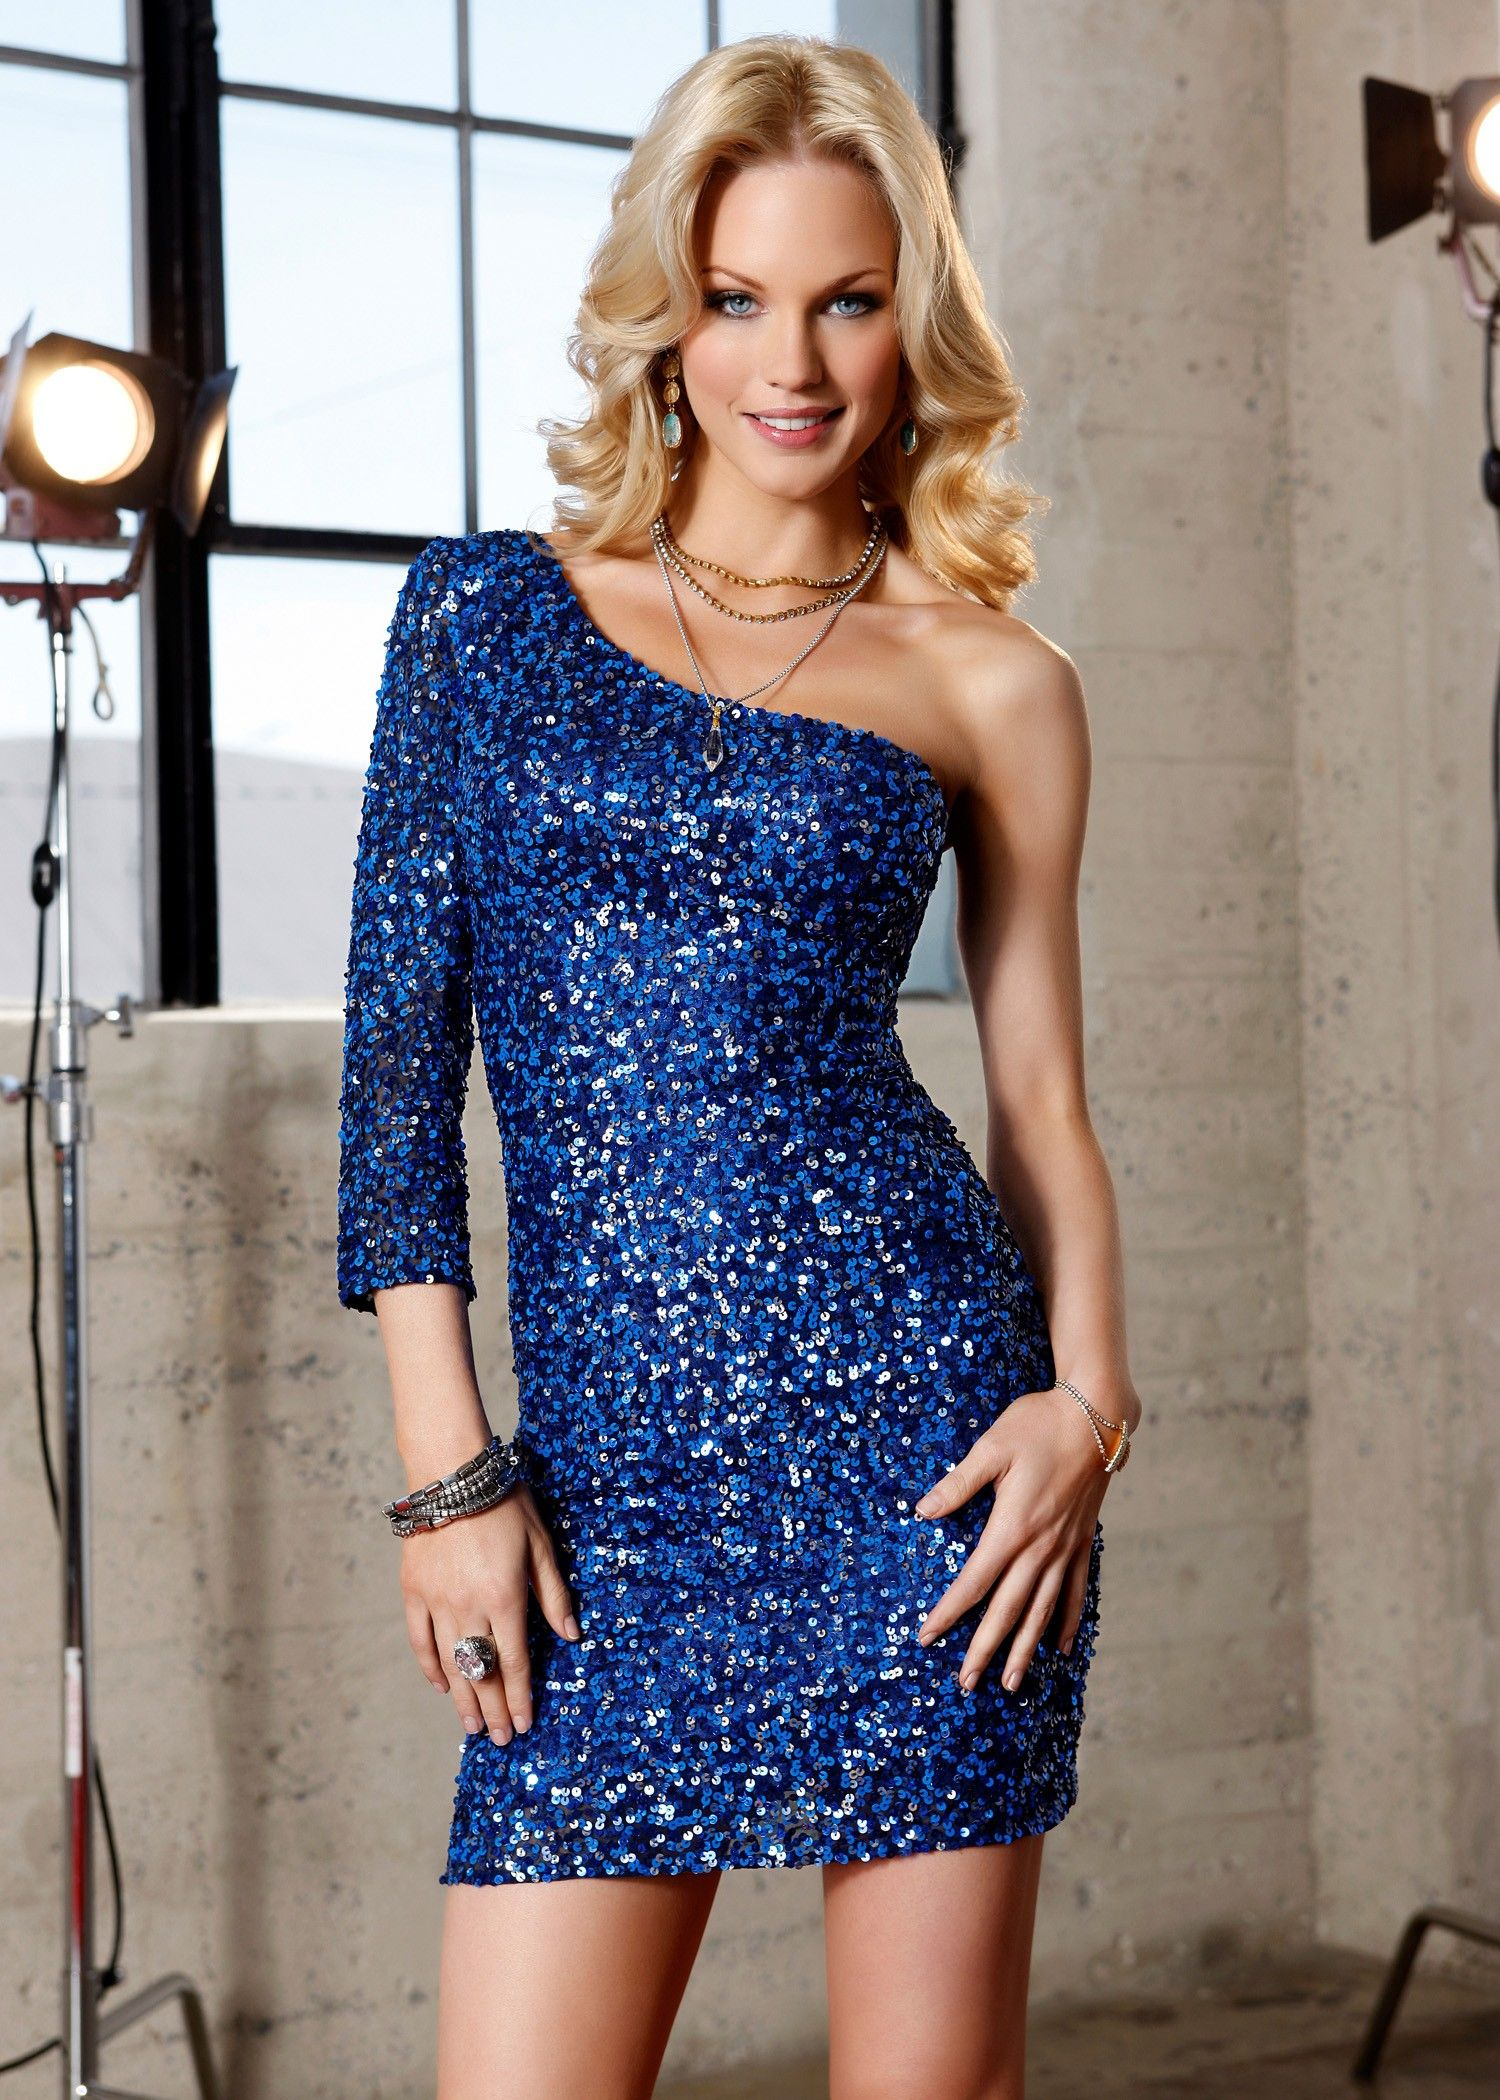 Scala 47485 One Sleeve Navy Blue Sequin Cocktail Dress - SALE ...